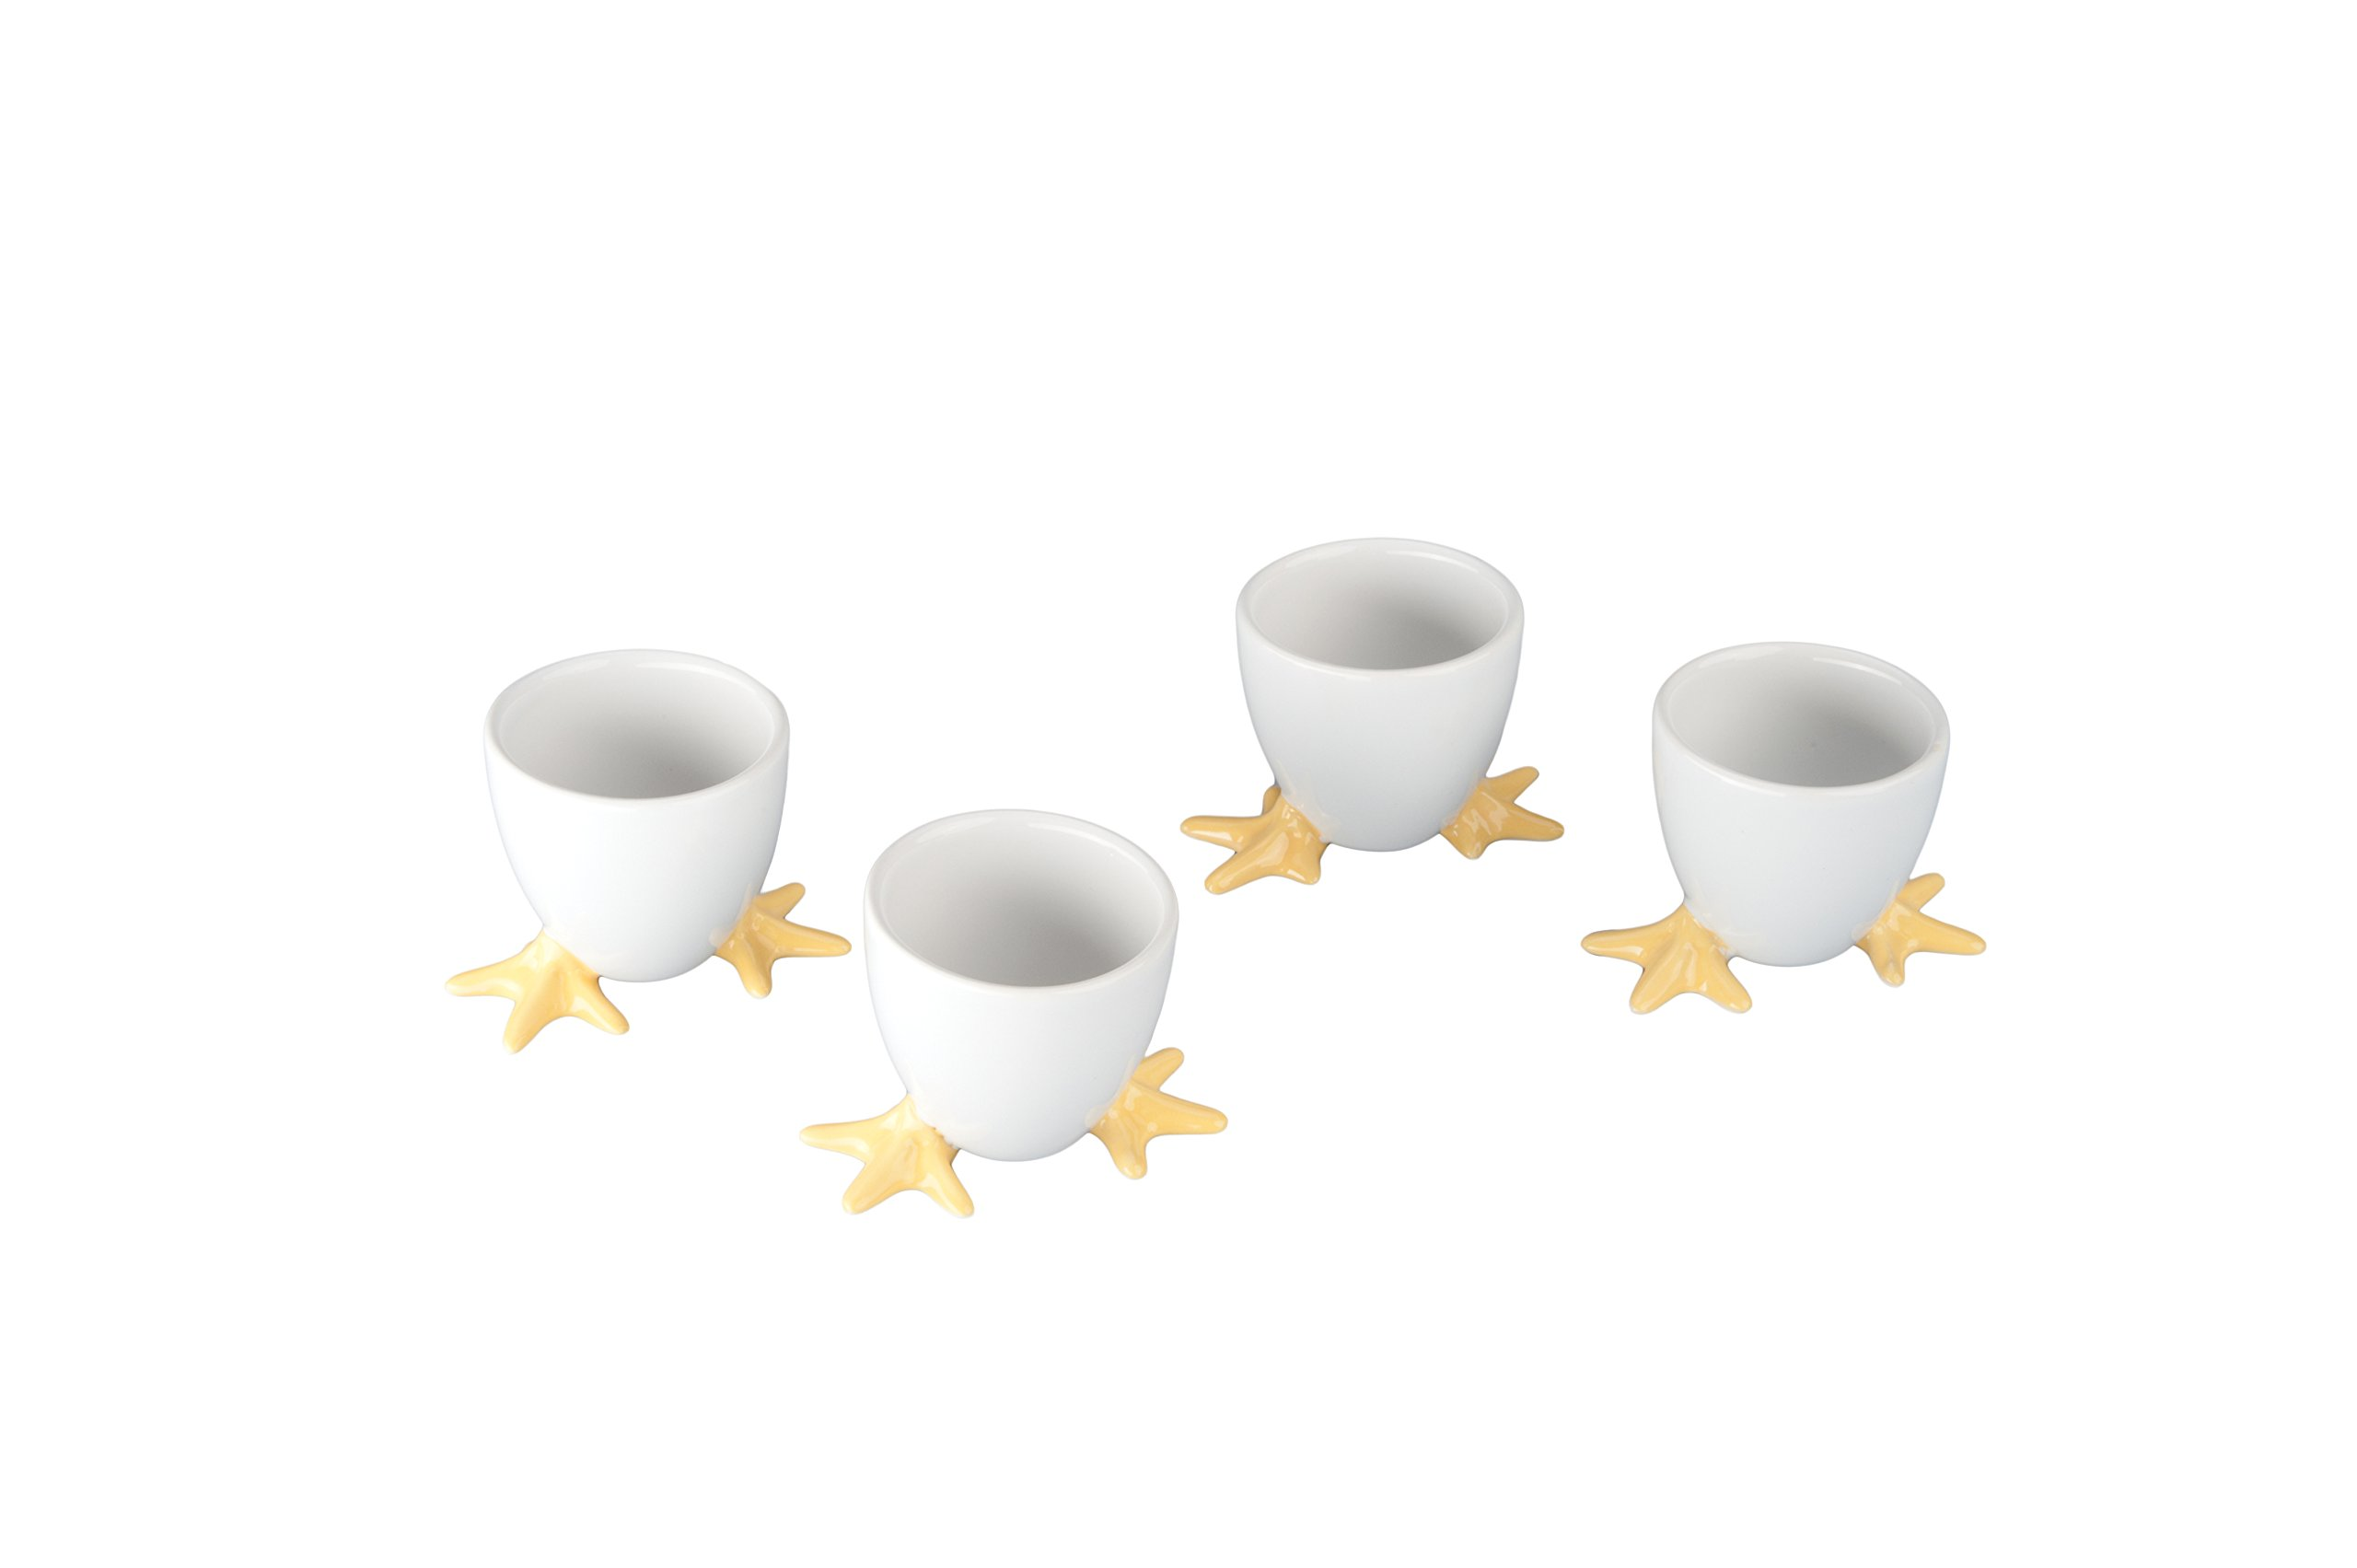 BIA Cordon Bleu White Chicken Footed Egg Cup with Yellow Feet, Set of 4